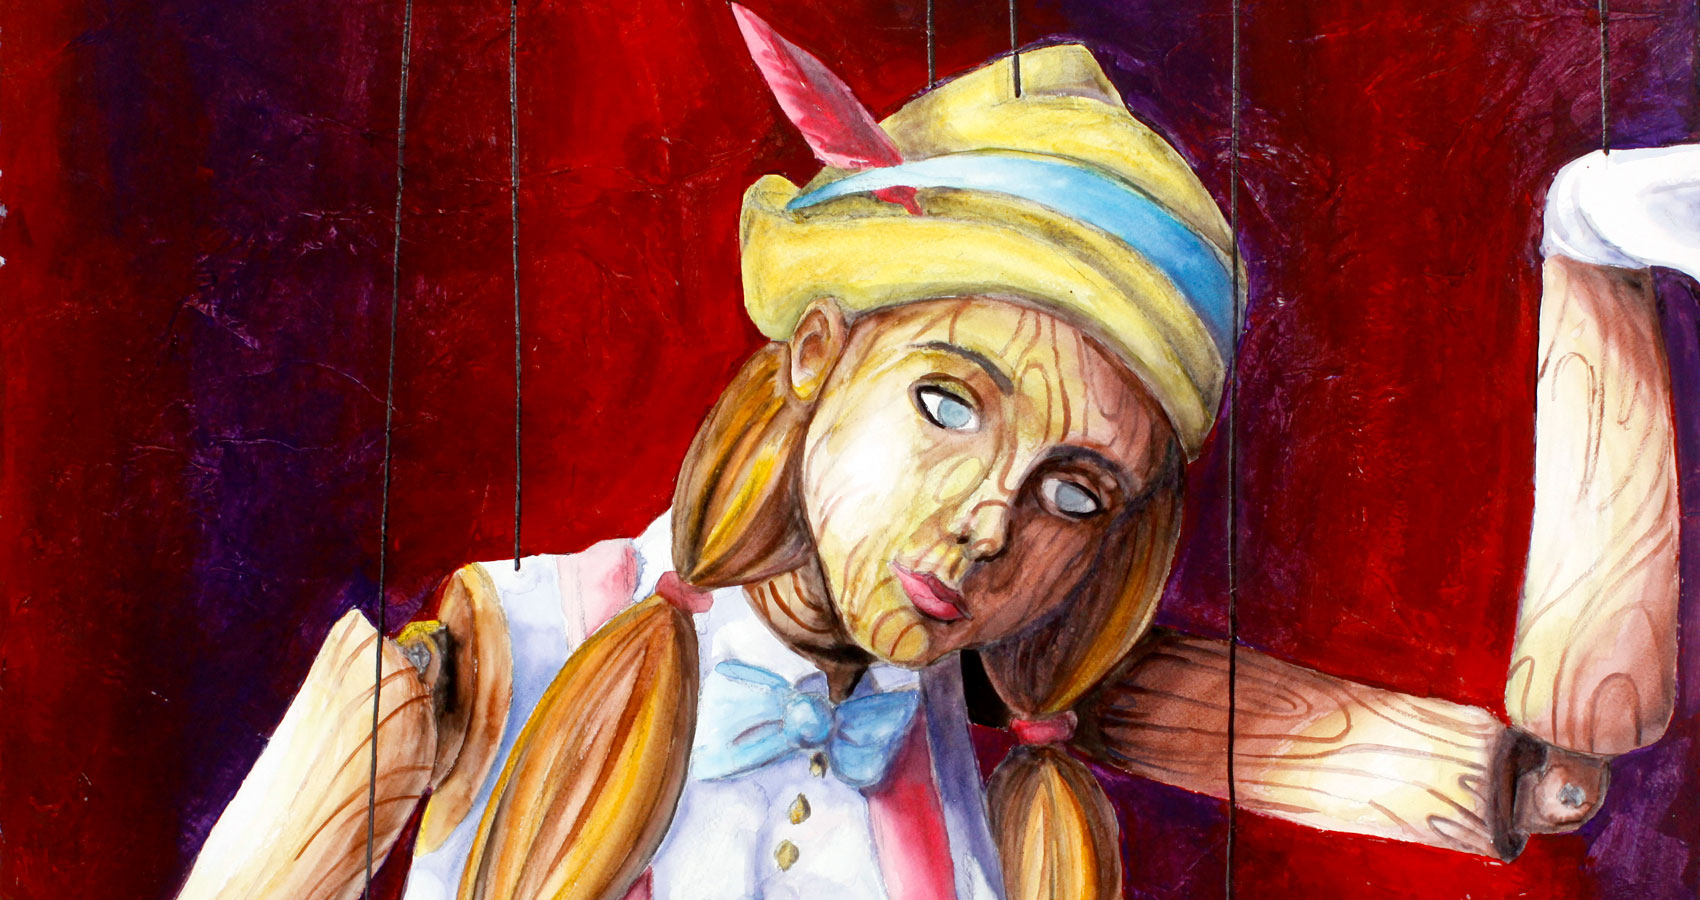 Marionette written by L.M. Giannone at Spillwords.com